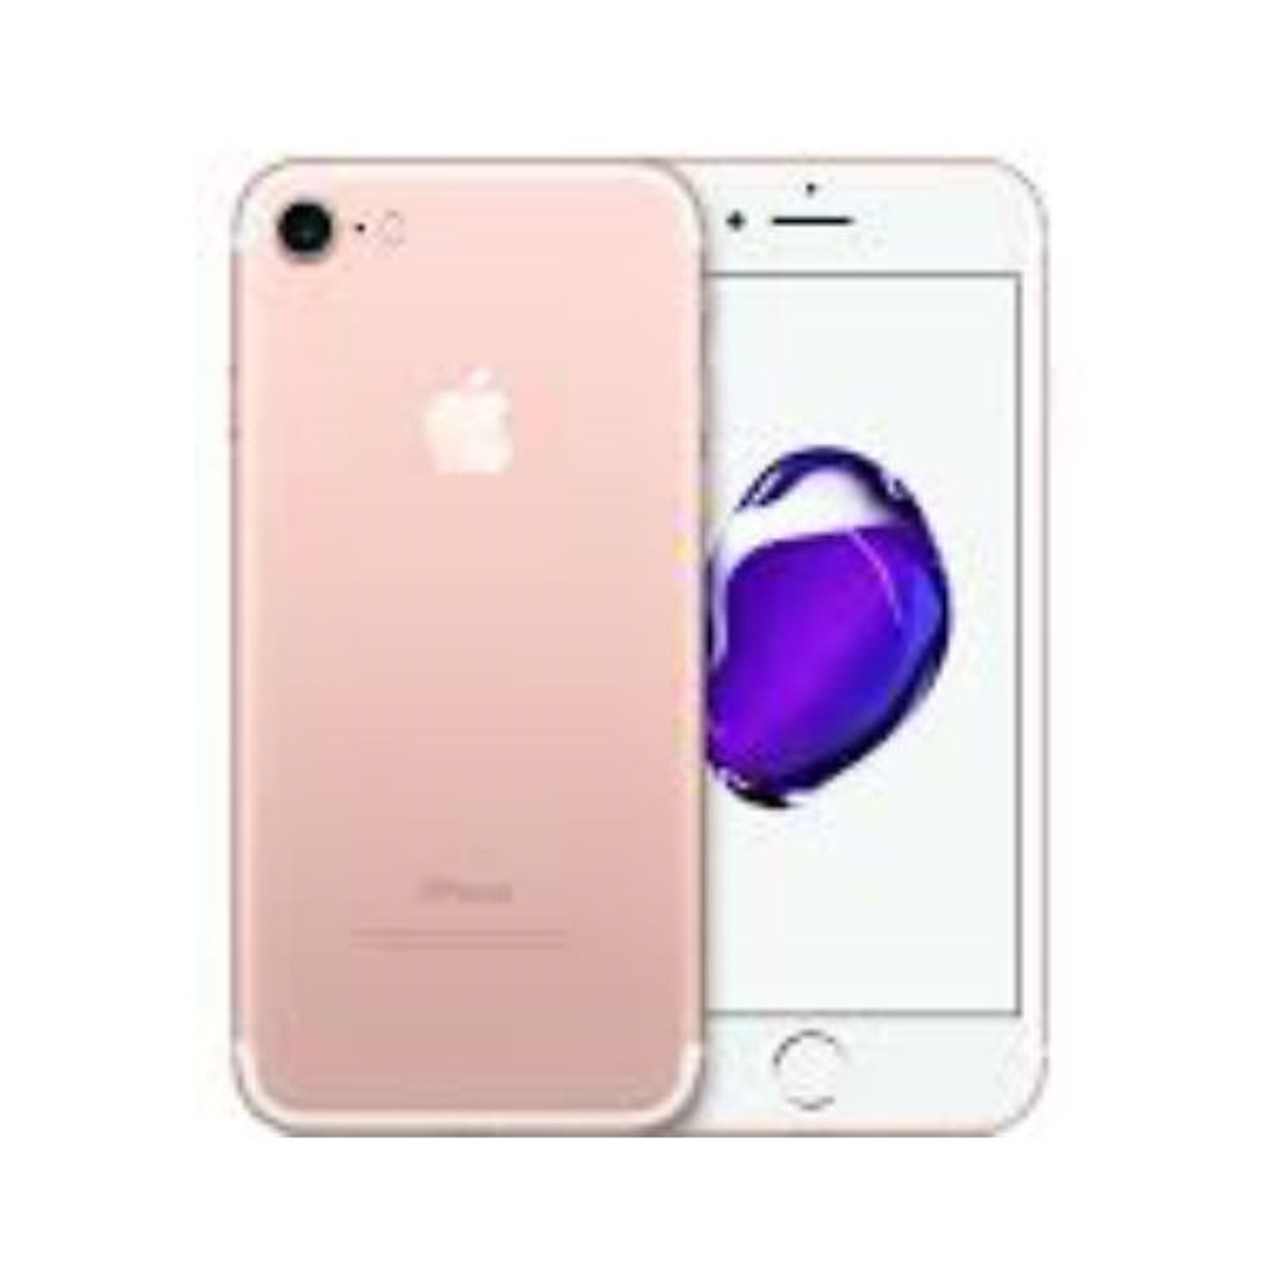 Apple iPhone 7 (Unlocked) 32GB - Rose Gold MN9GCLL/A - Very Good